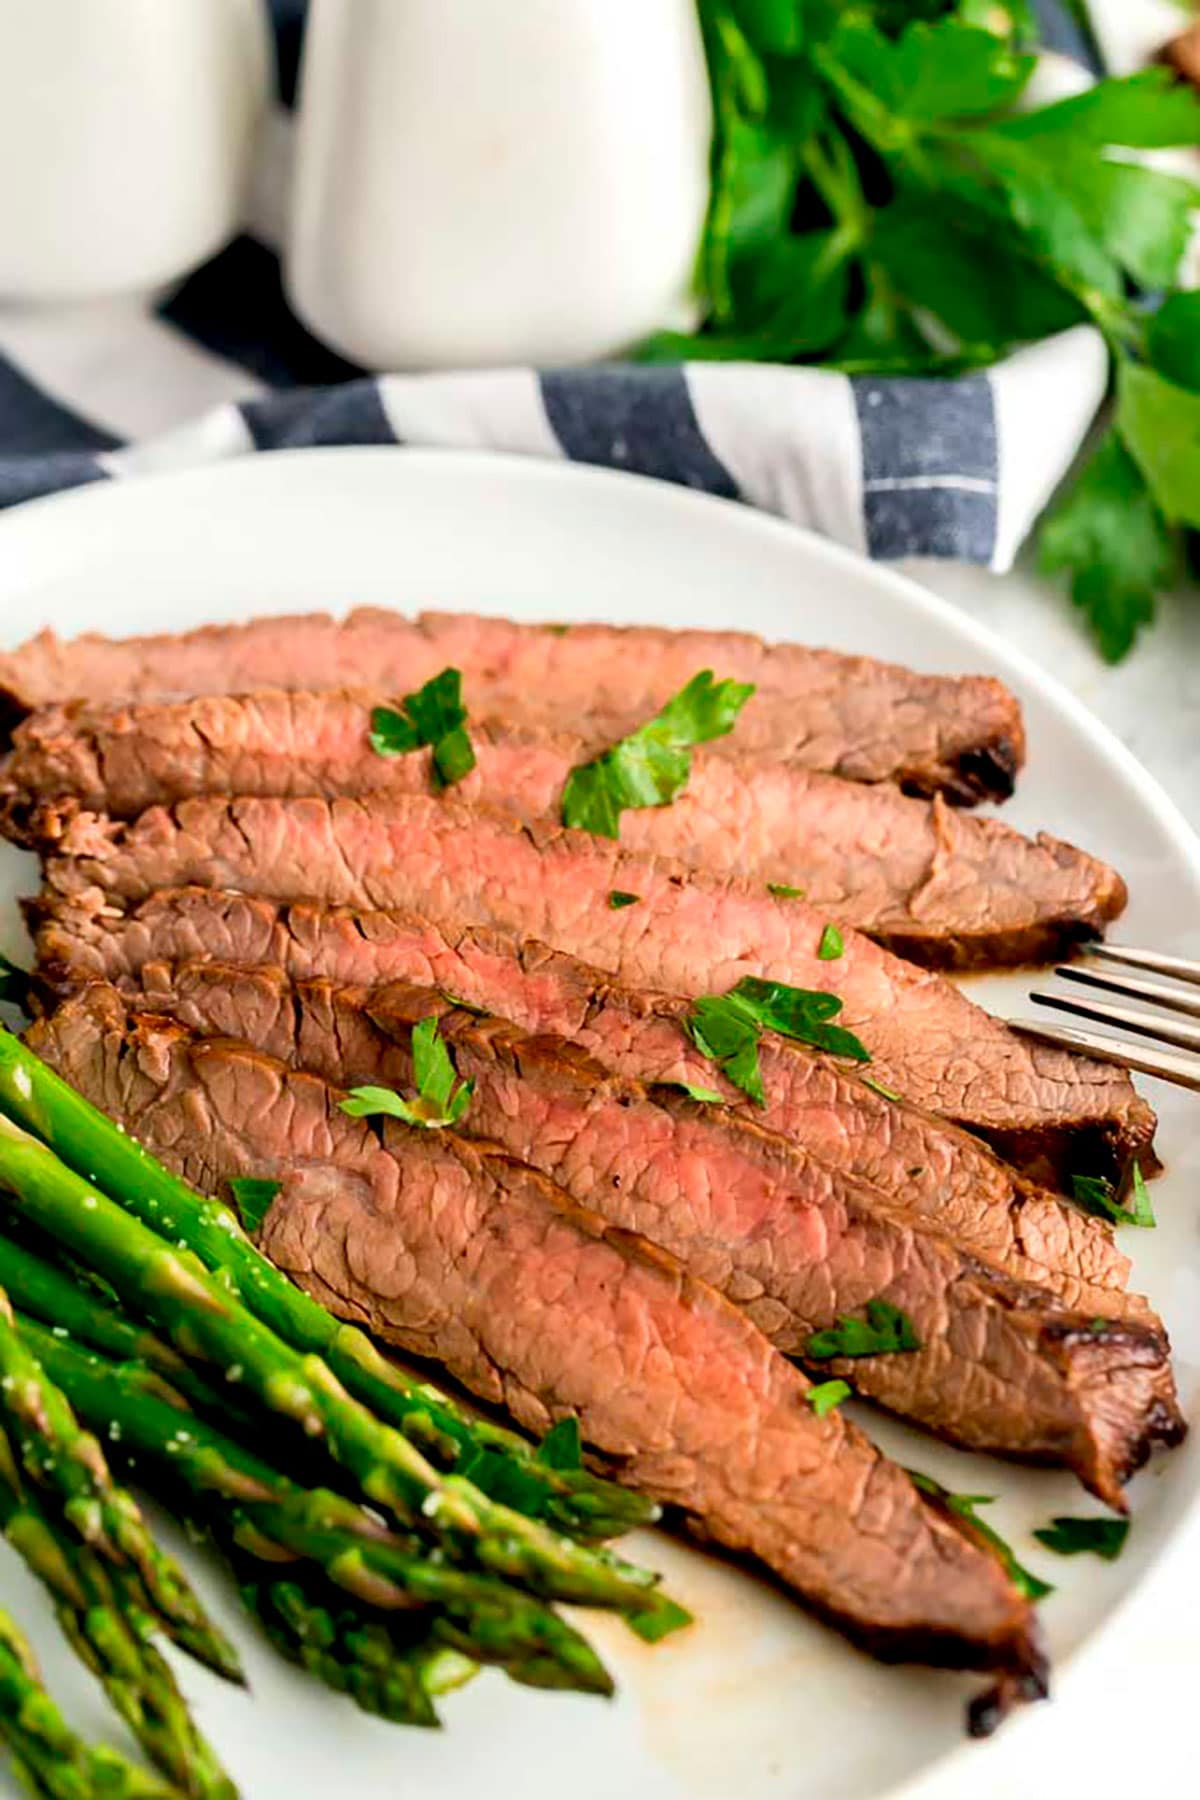 London broil sliced and served with asparagus.